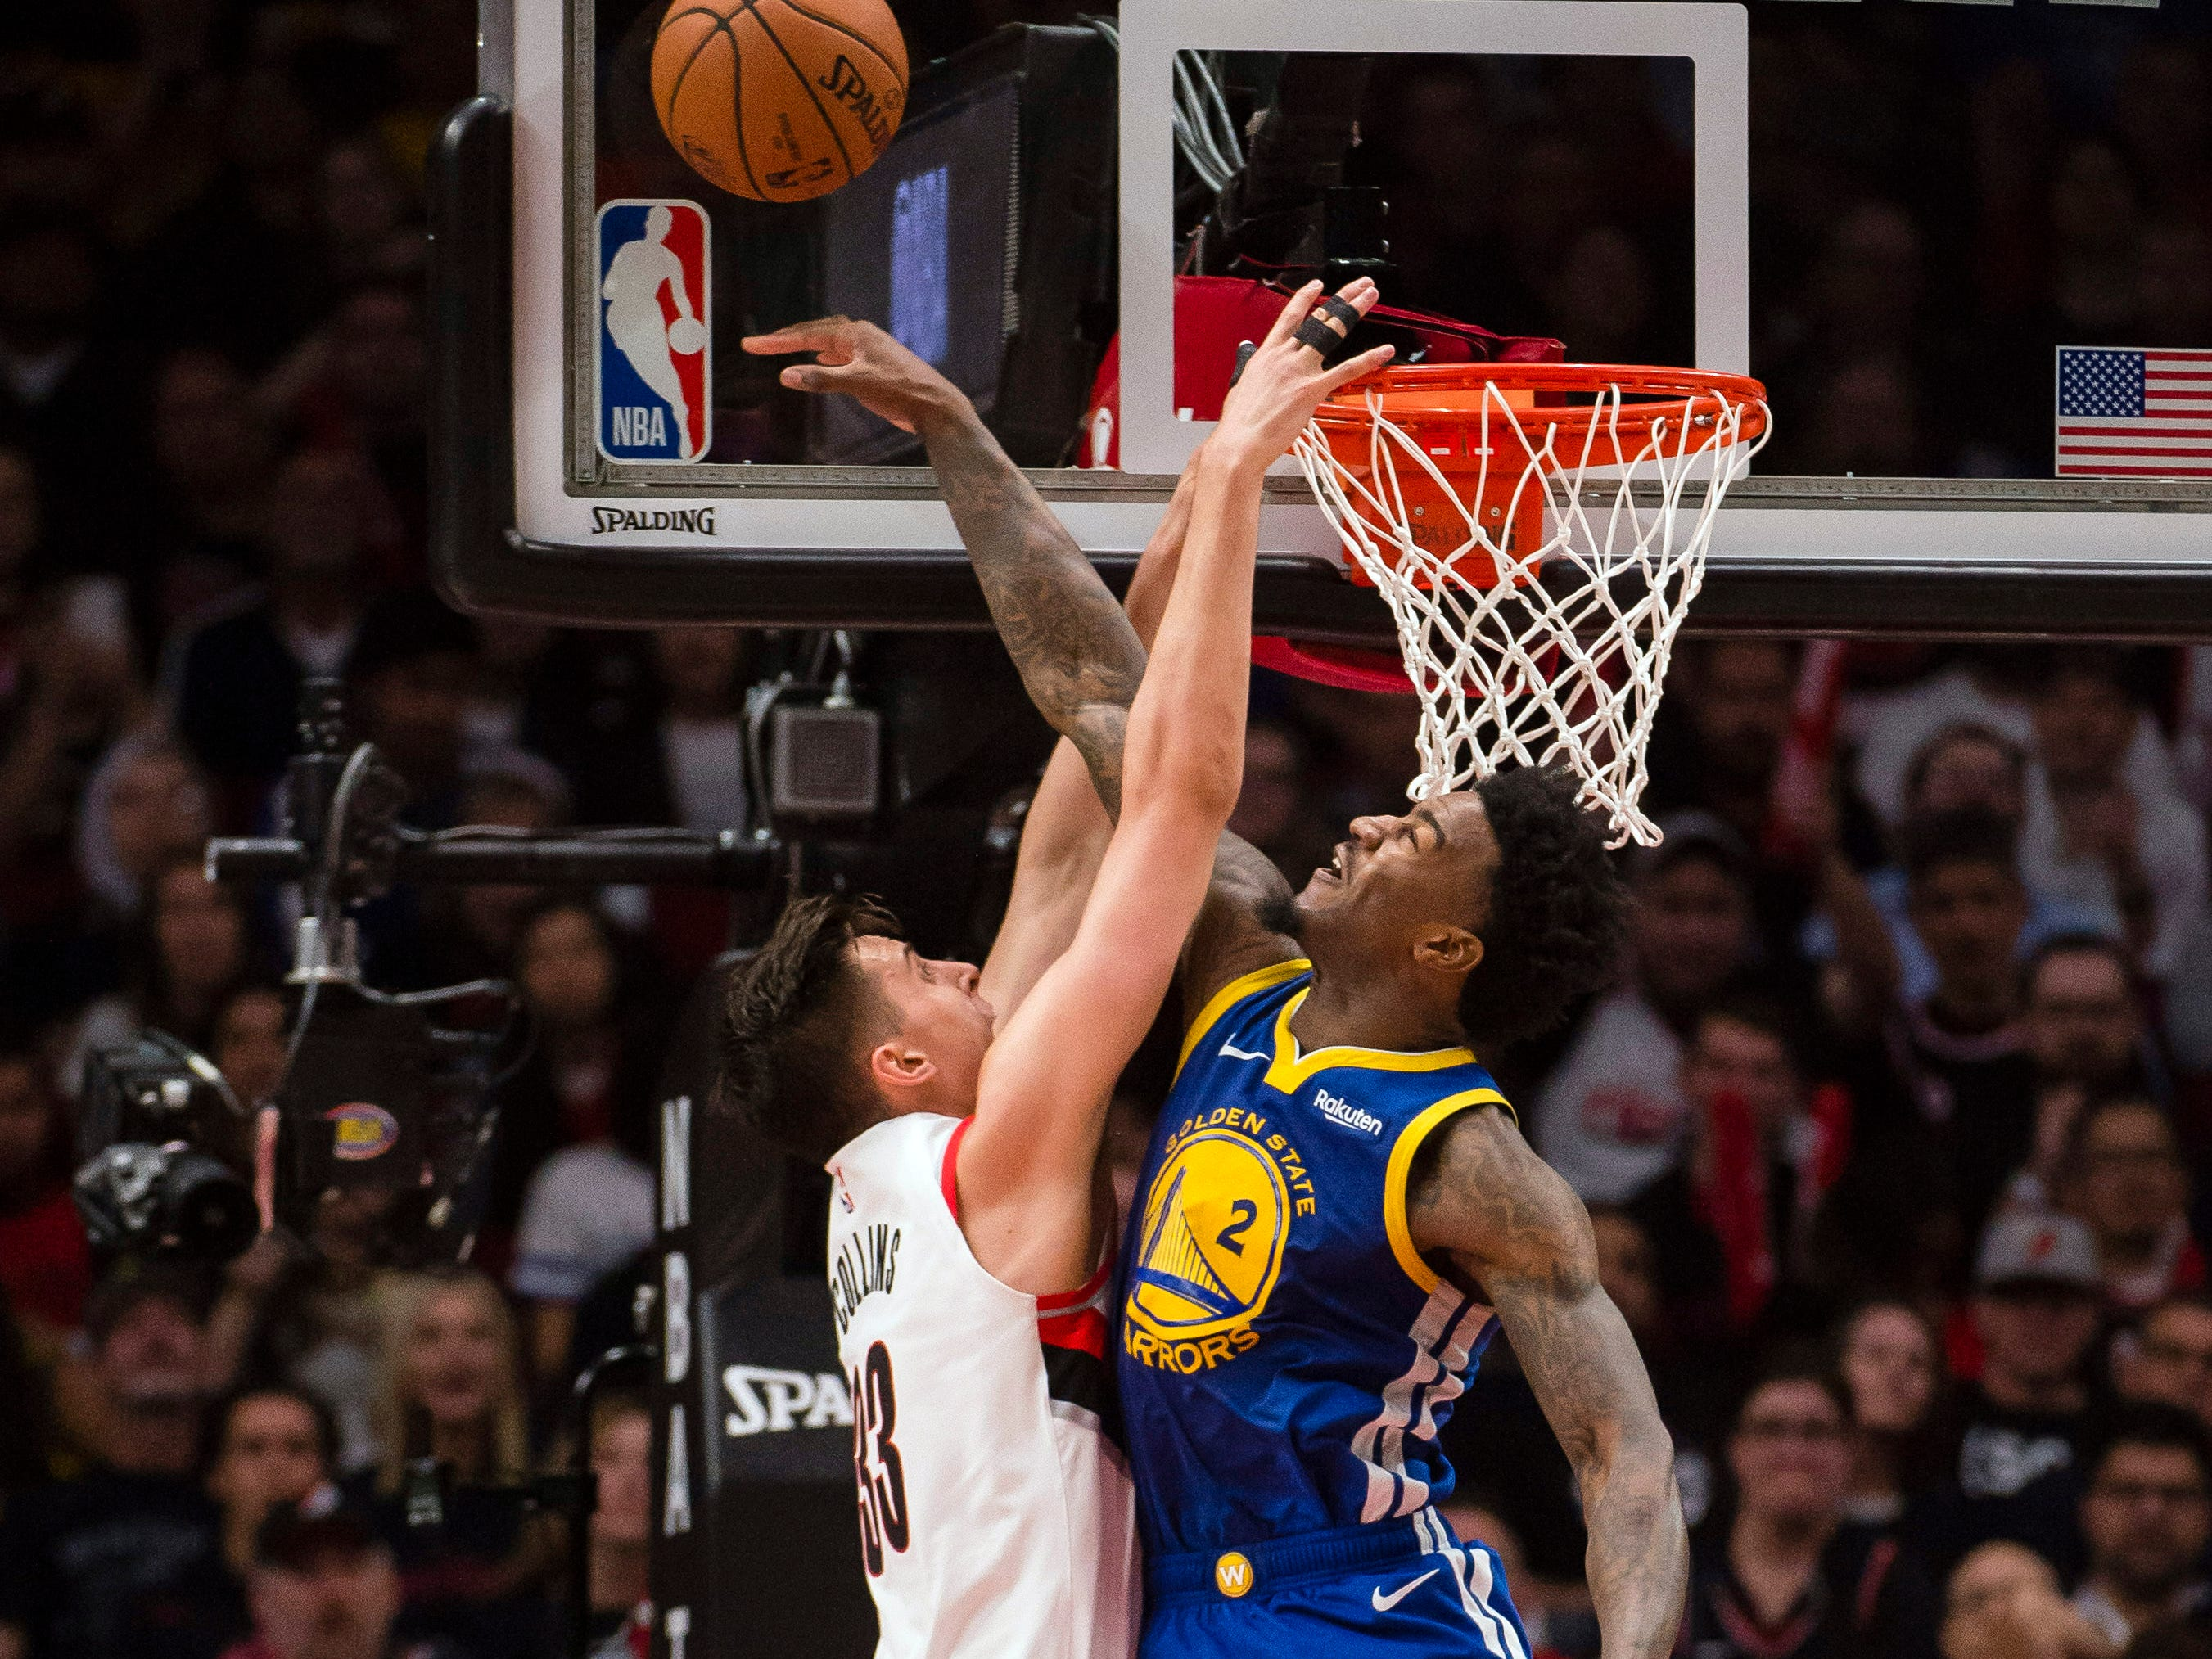 May 1: Warriors defender Jordan Bell (2) blocks a shot attempt by Blazers forward Zach Collins (33) during Game 3.